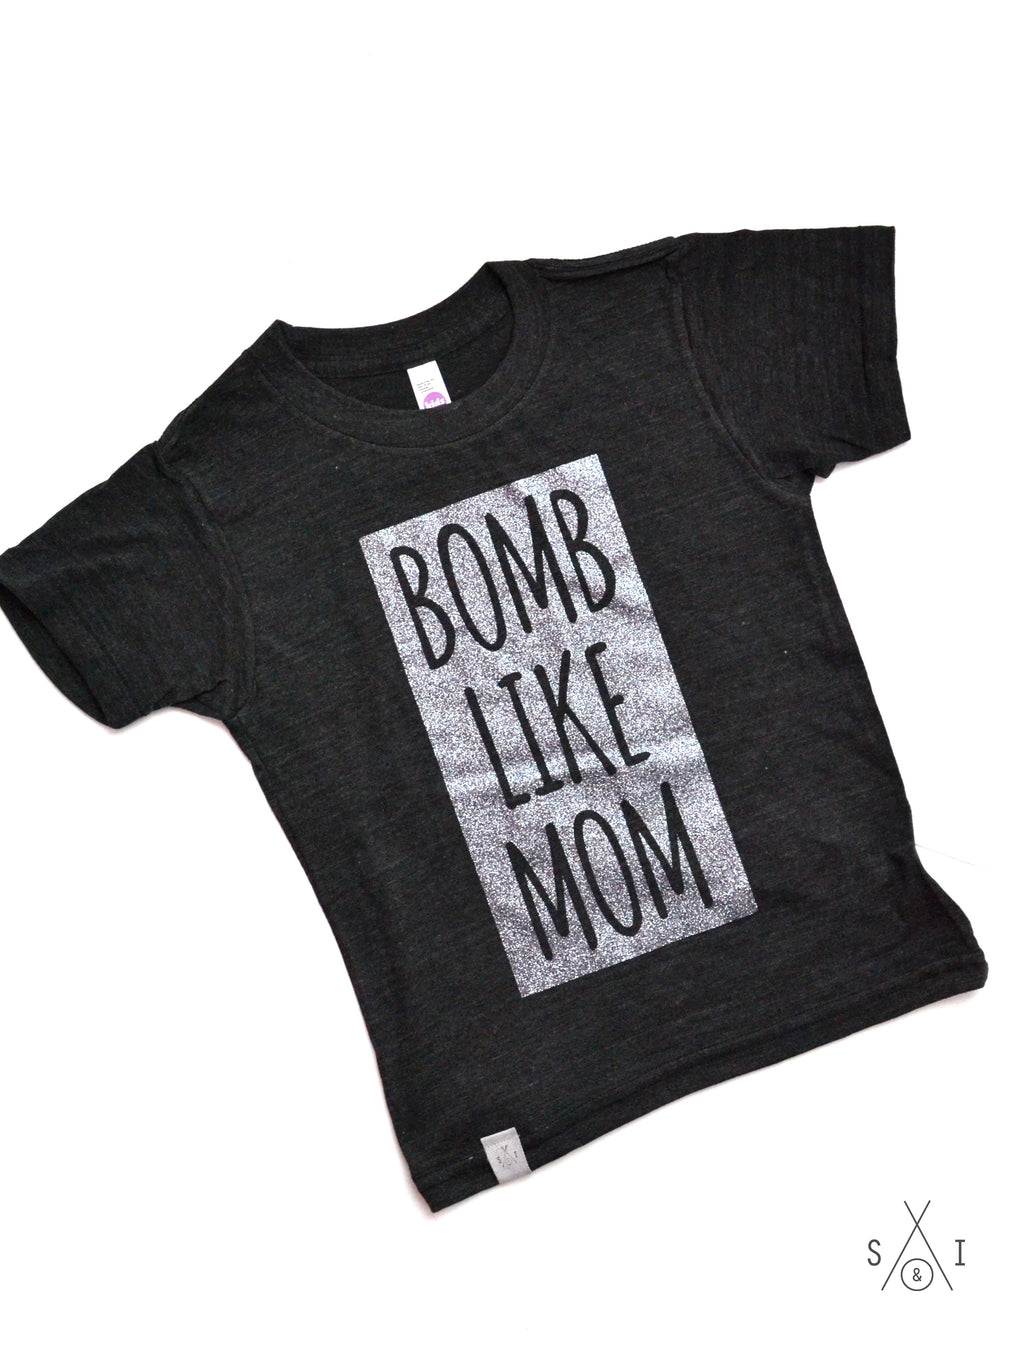 b0mb like mom  kids tee: block letters